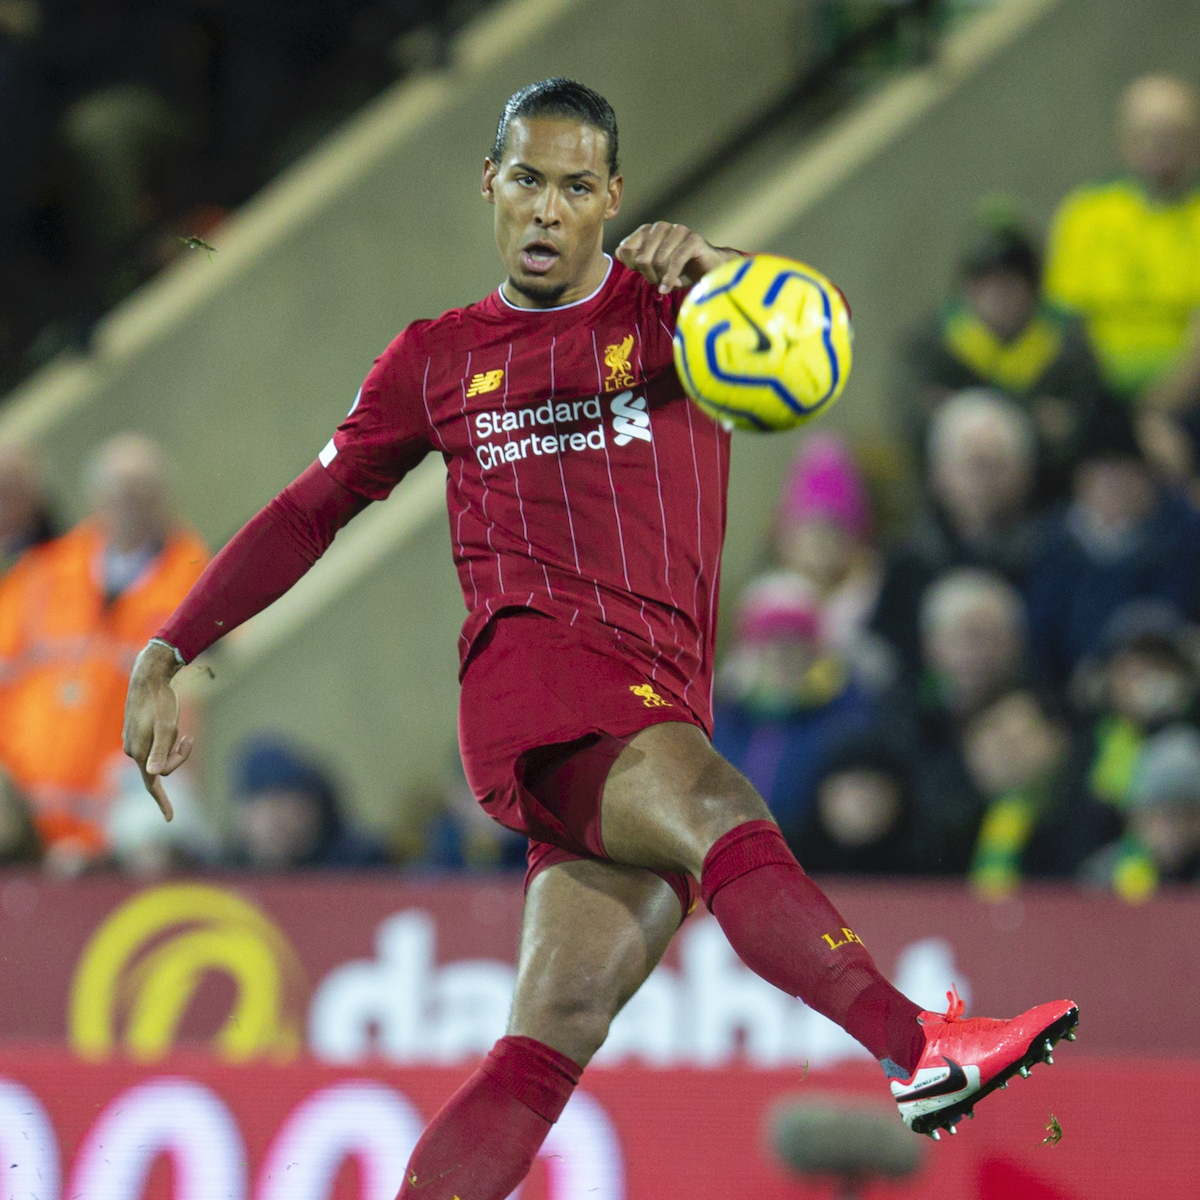 NORWICH, ENGLAND - Saturday, February 15, 2020: Liverpool's Virgil van Dijk during the FA Premier League match between Norwich City FC and Liverpool FC at Carrow Road. (Pic by David Rawcliffe/Propaganda)